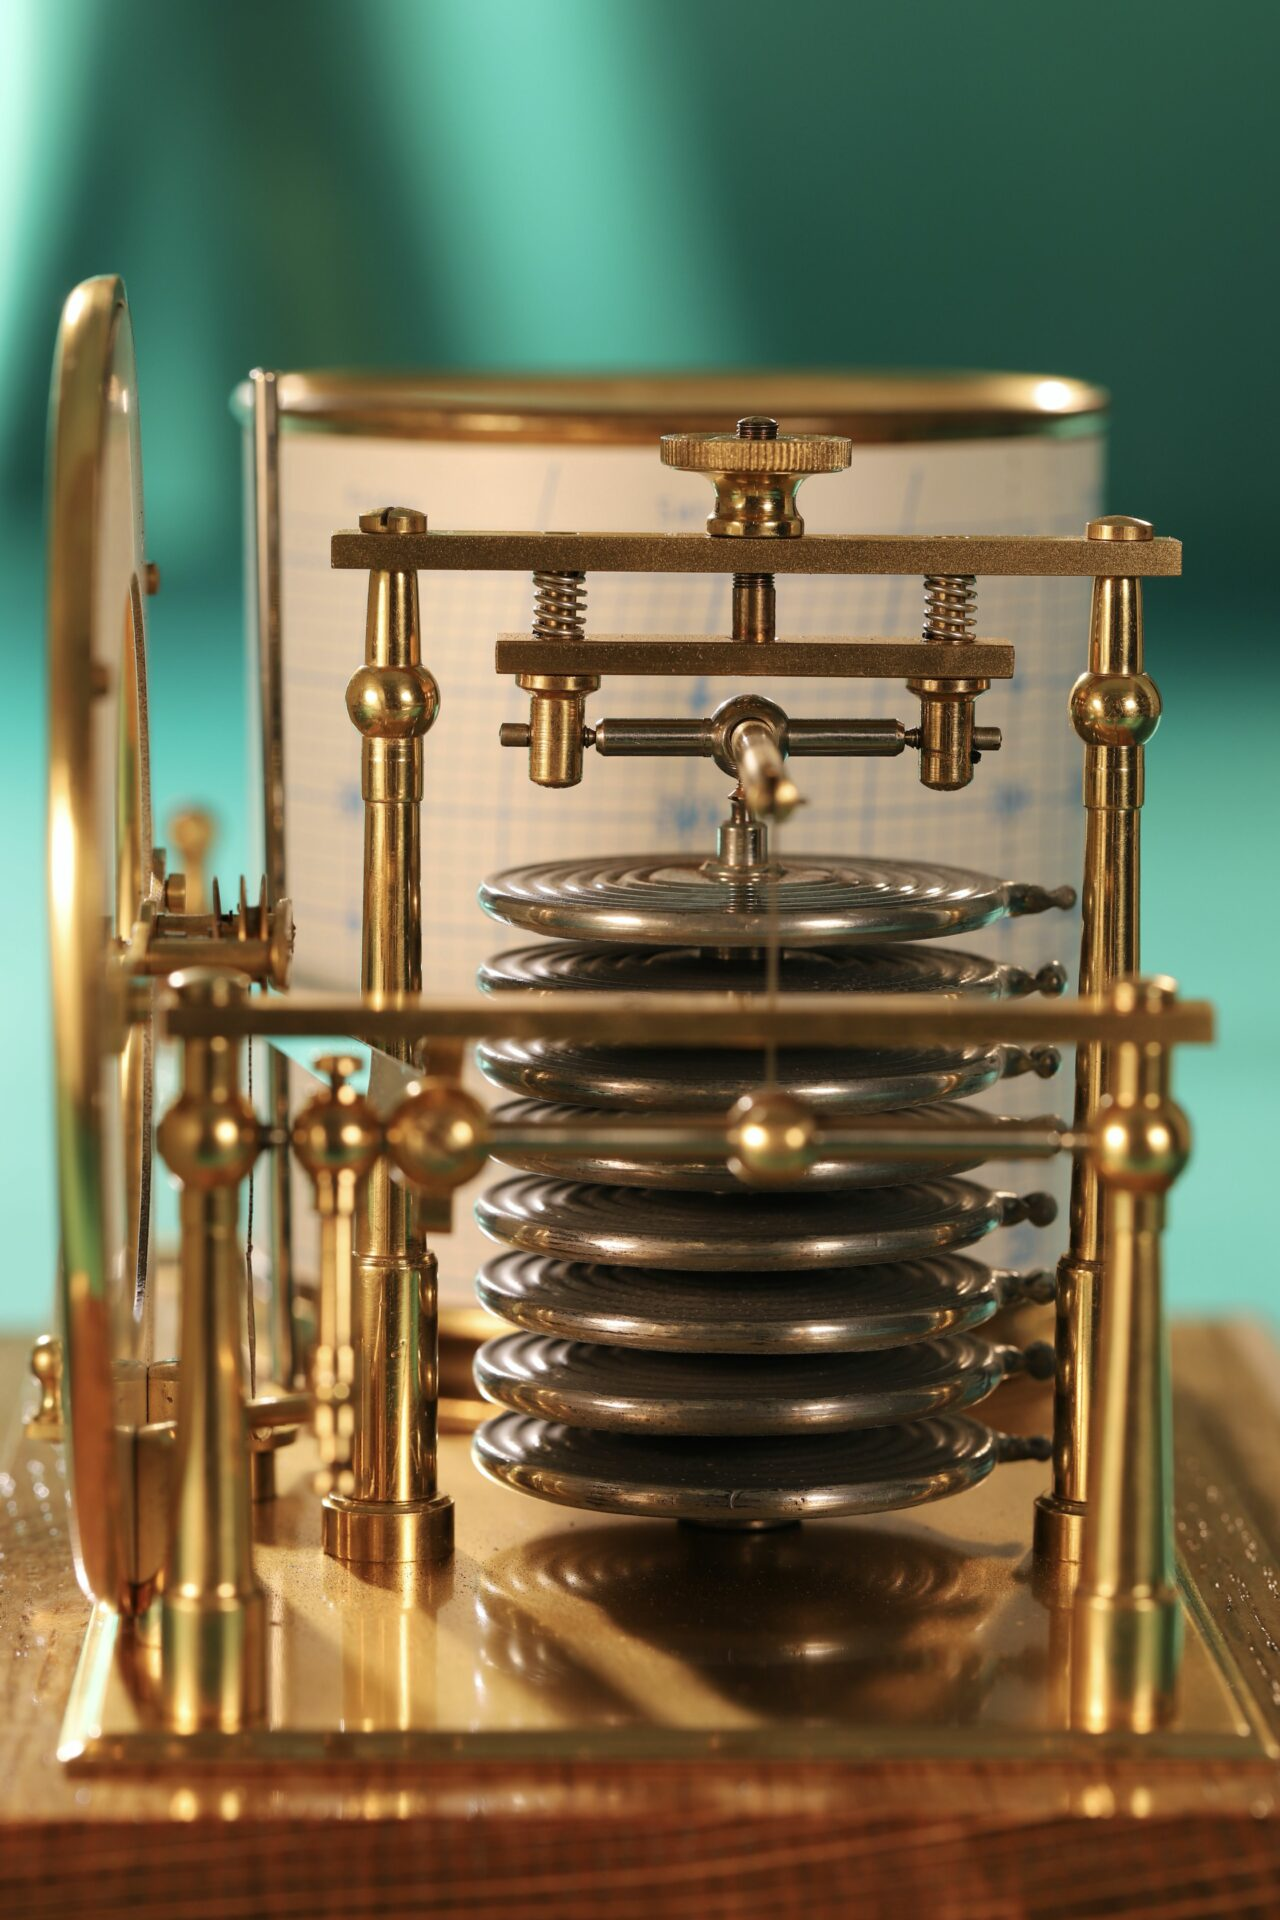 Close up of Short & Mason Tycos Drum Barograph with Dial No 5431 c1930 with case lid removed, taken end on focusing on capsule stack